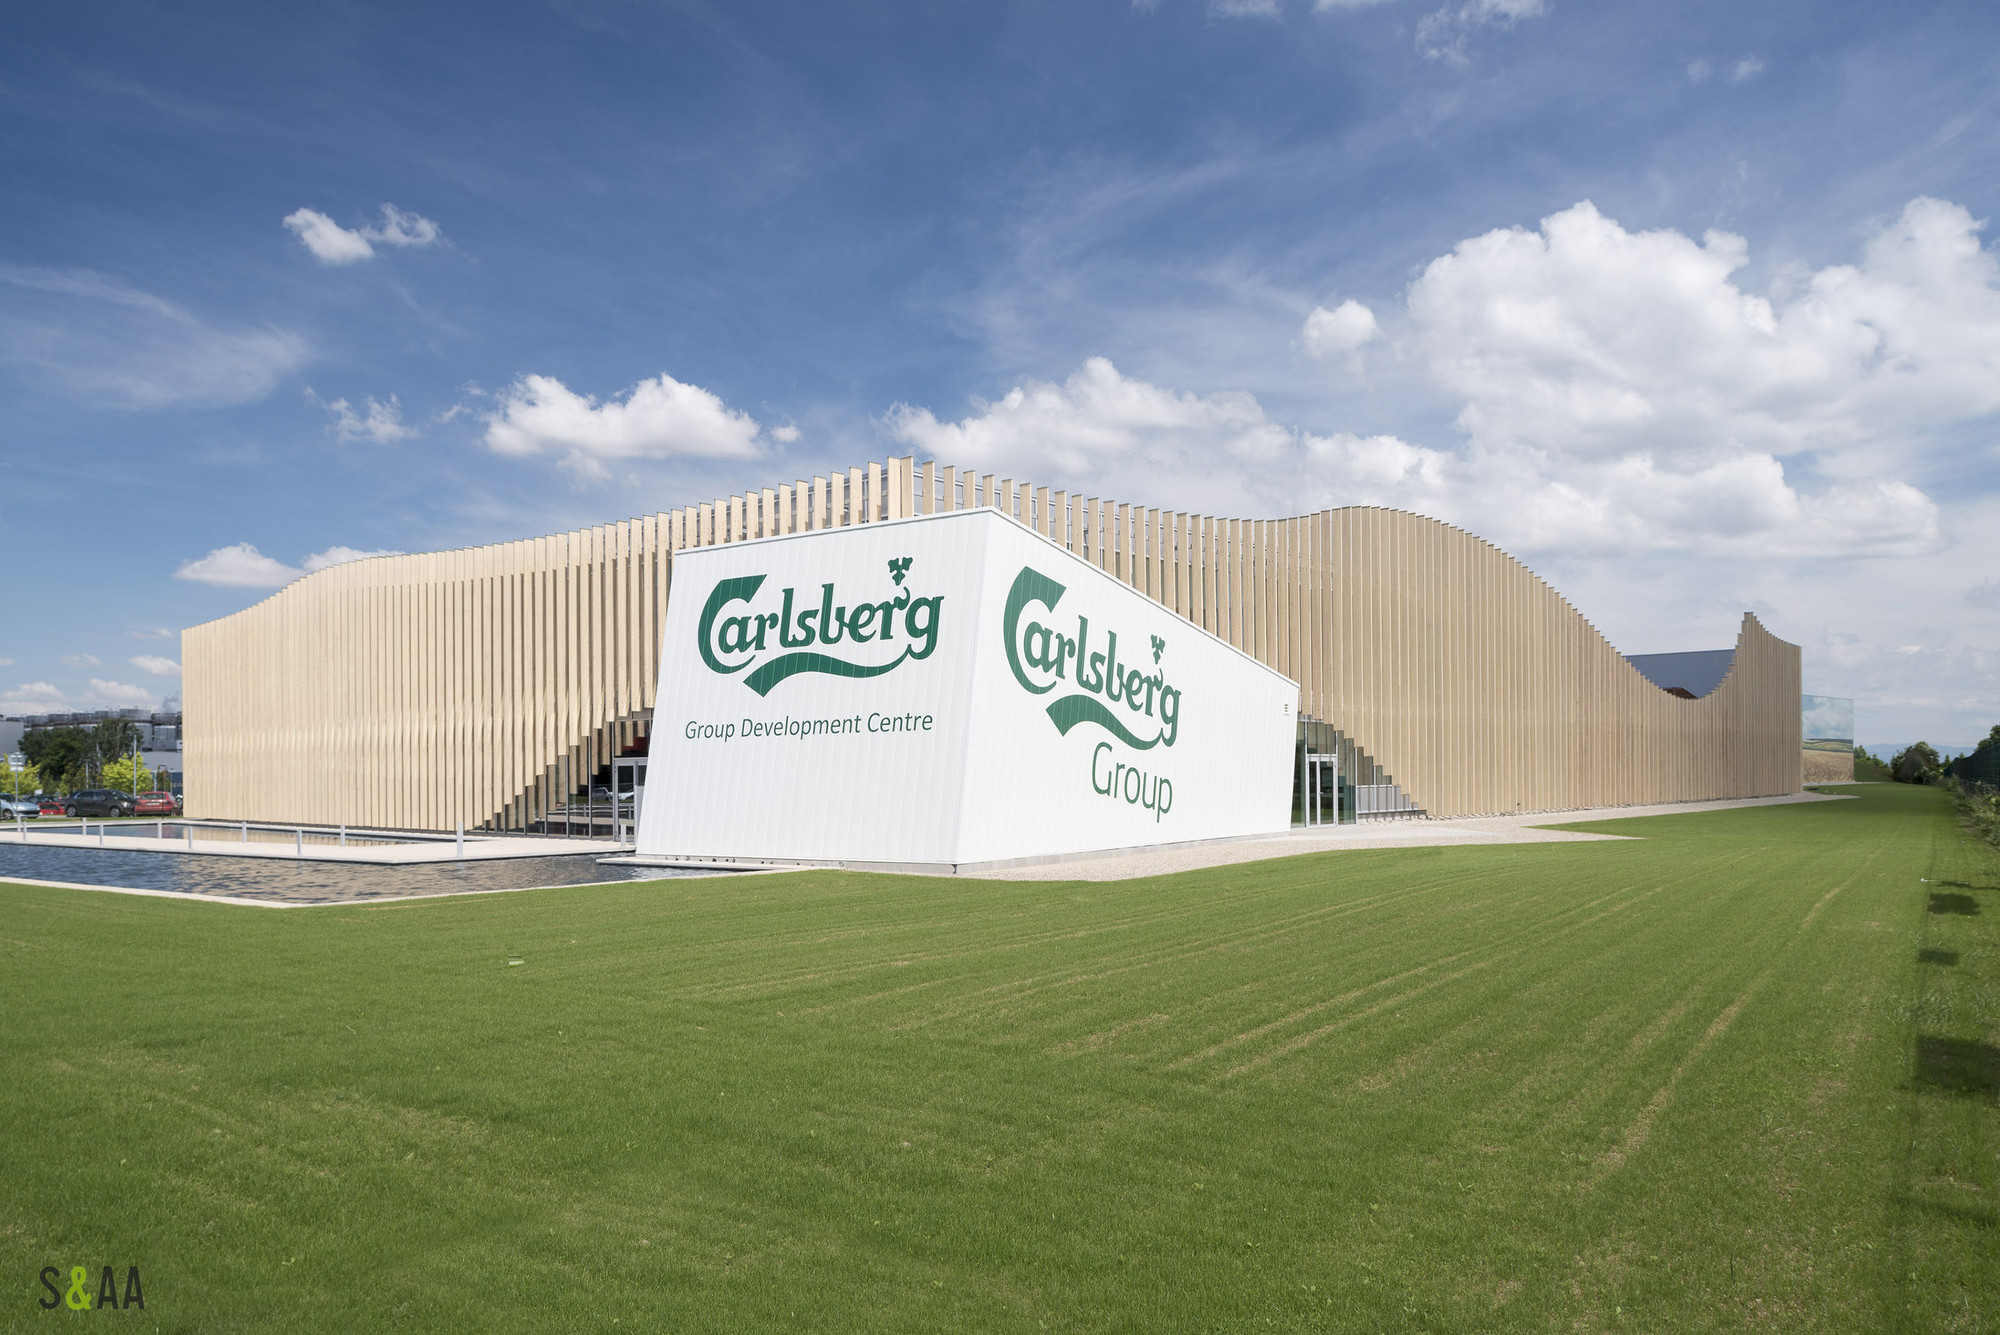 Carlsberg Innovation, Research And Development Centre / S&AA, © Pierre Pommereau